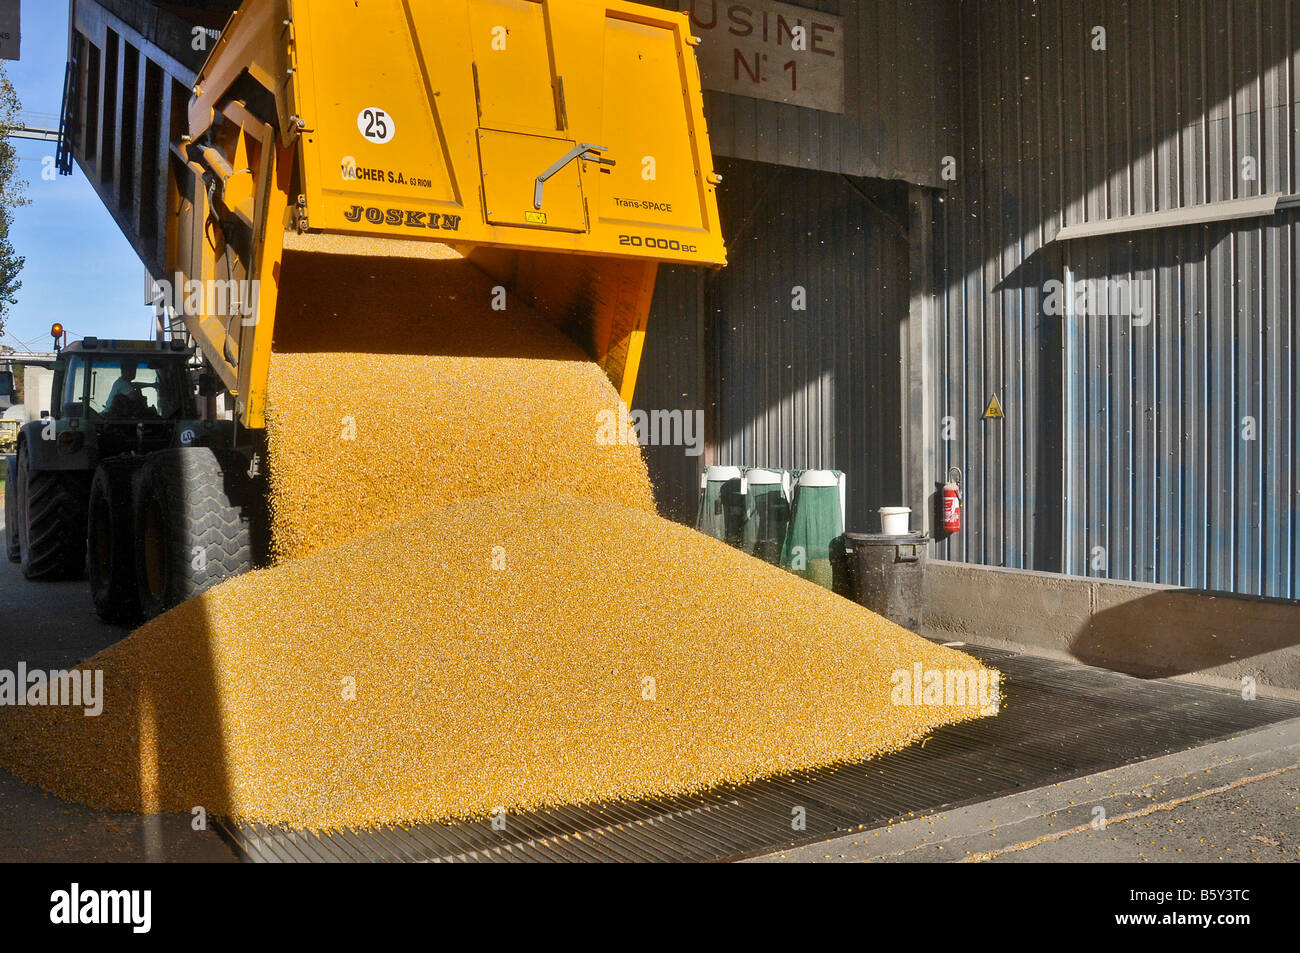 Unloading a trailer of corn in the hopper of the agricultural cooperative - Stock Image